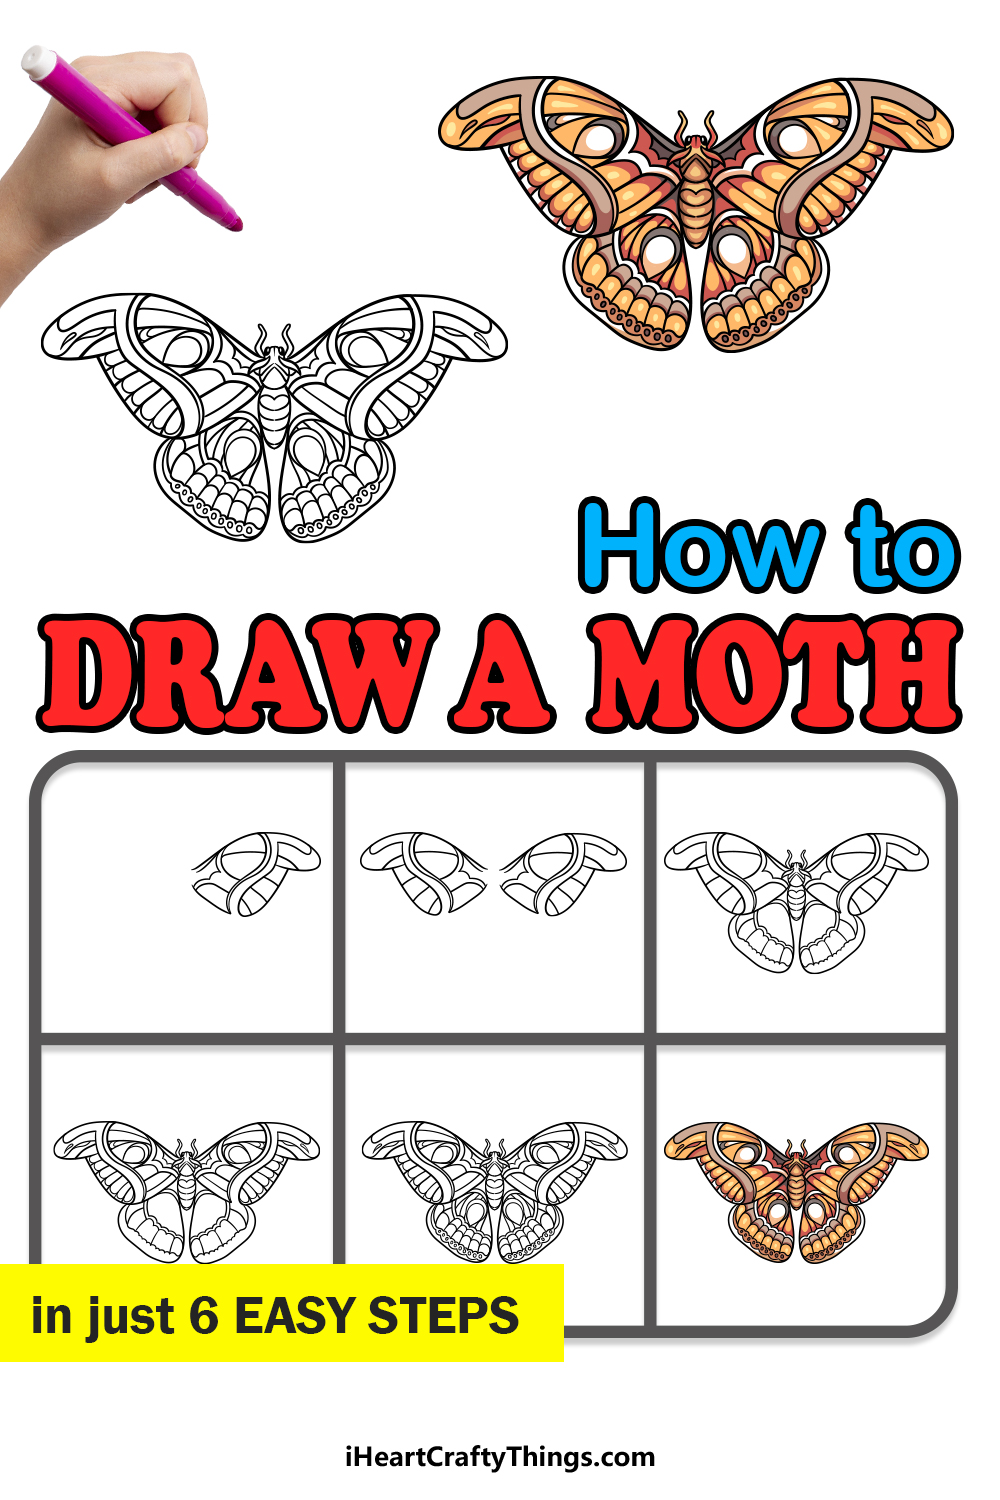 how to draw a moth in 6 easy steps